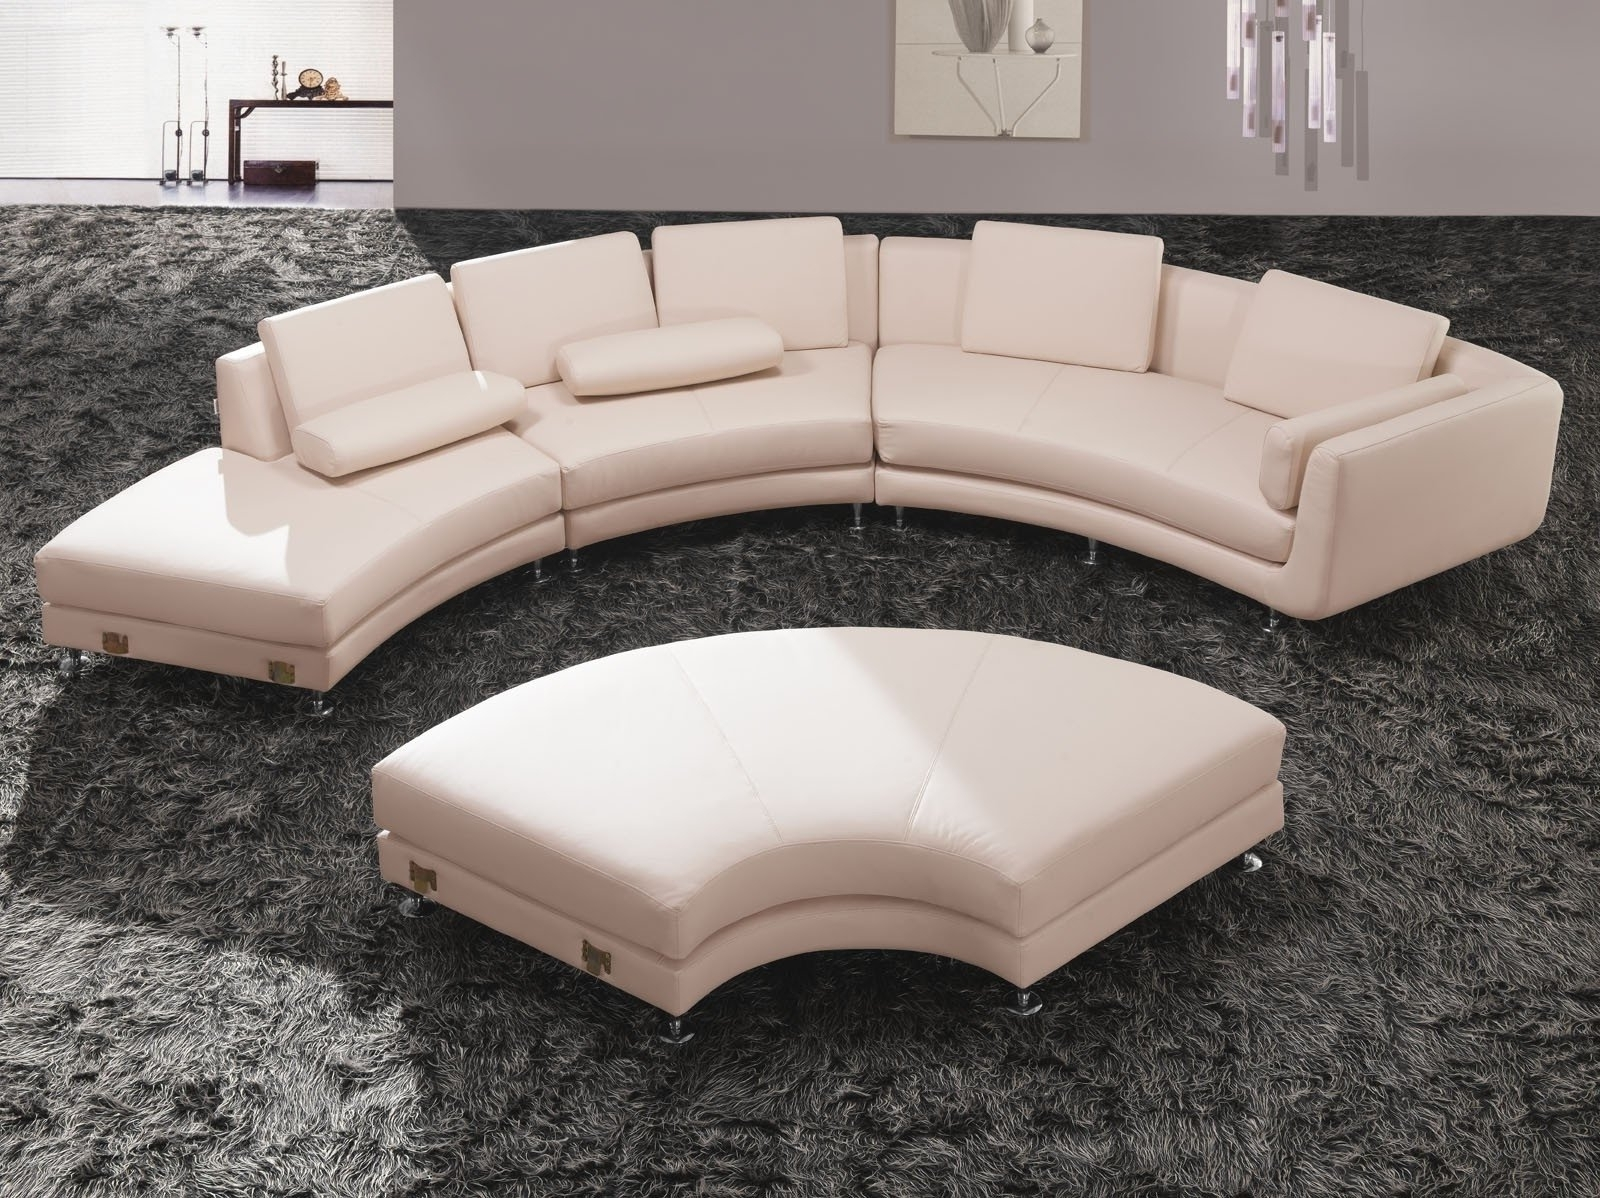 Hickory Nc Sectional Sofas Pertaining To Popular Sofas Center Curved Sectional Sofas Hickory Nc Luxury Sofa With (View 17 of 20)